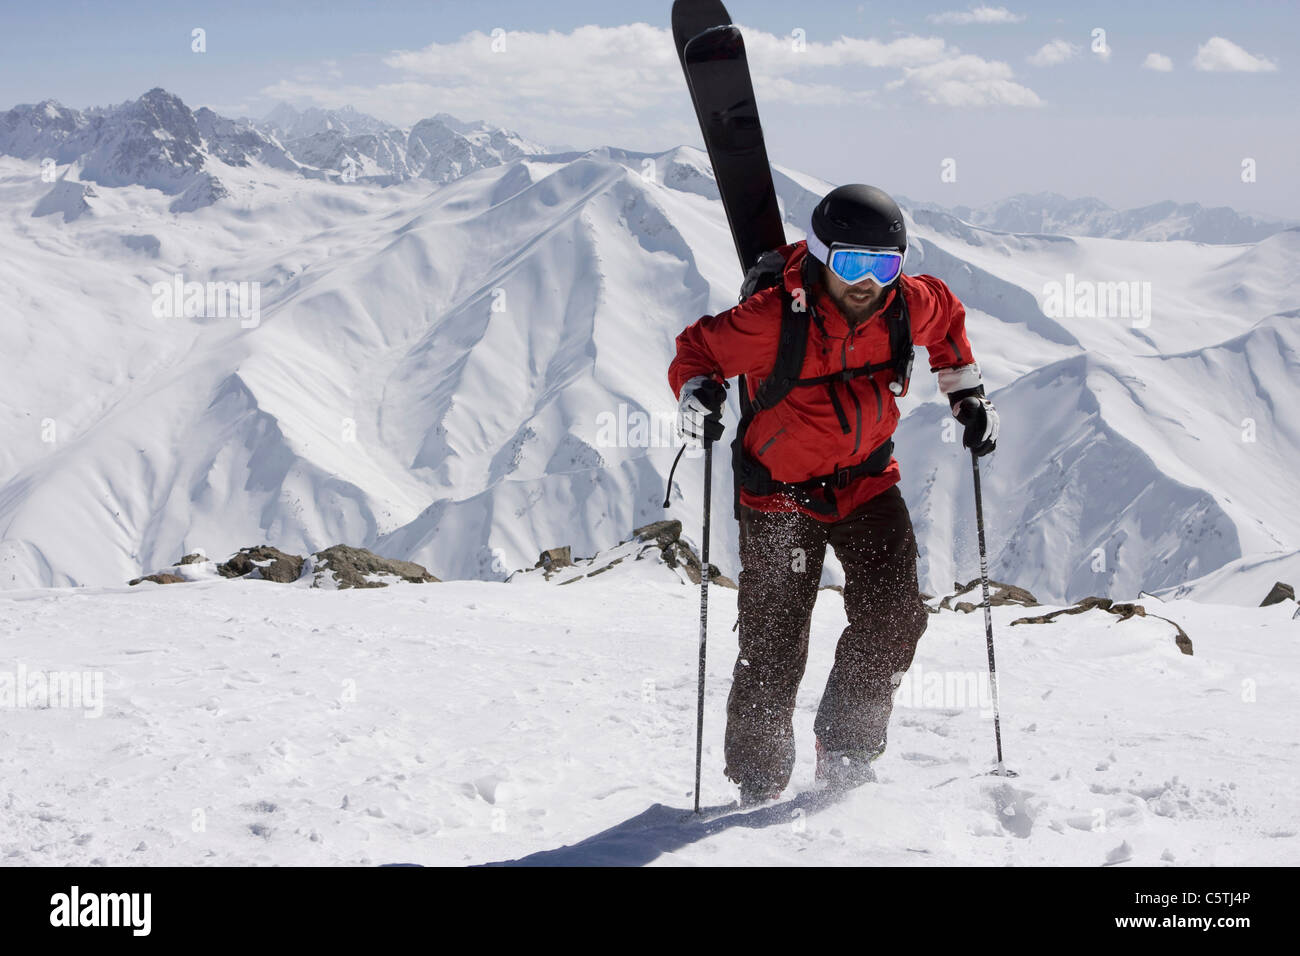 India, Kashmir, Gulmarg, Man with skis on back going uphill - Stock Image